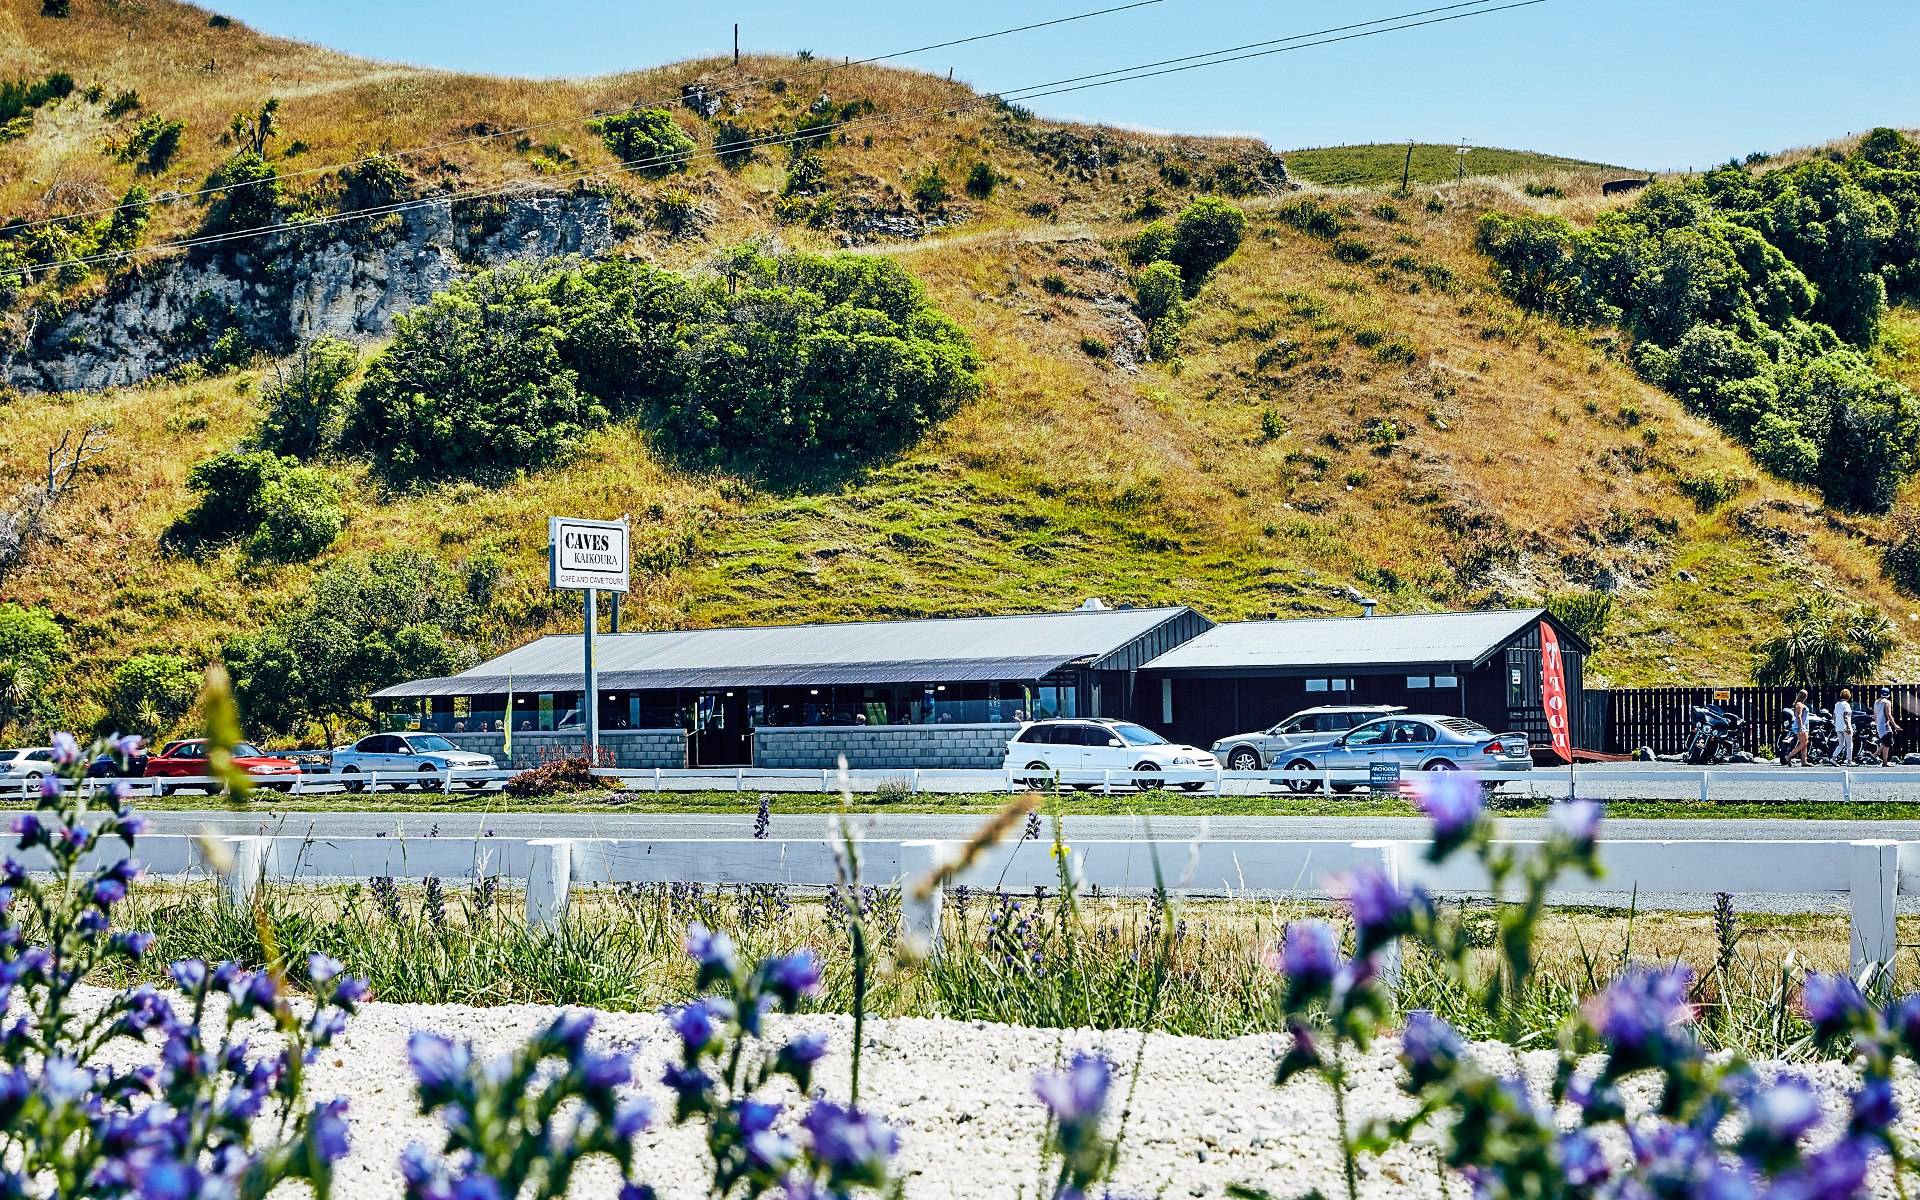 caves-kaikoura-cafe-03